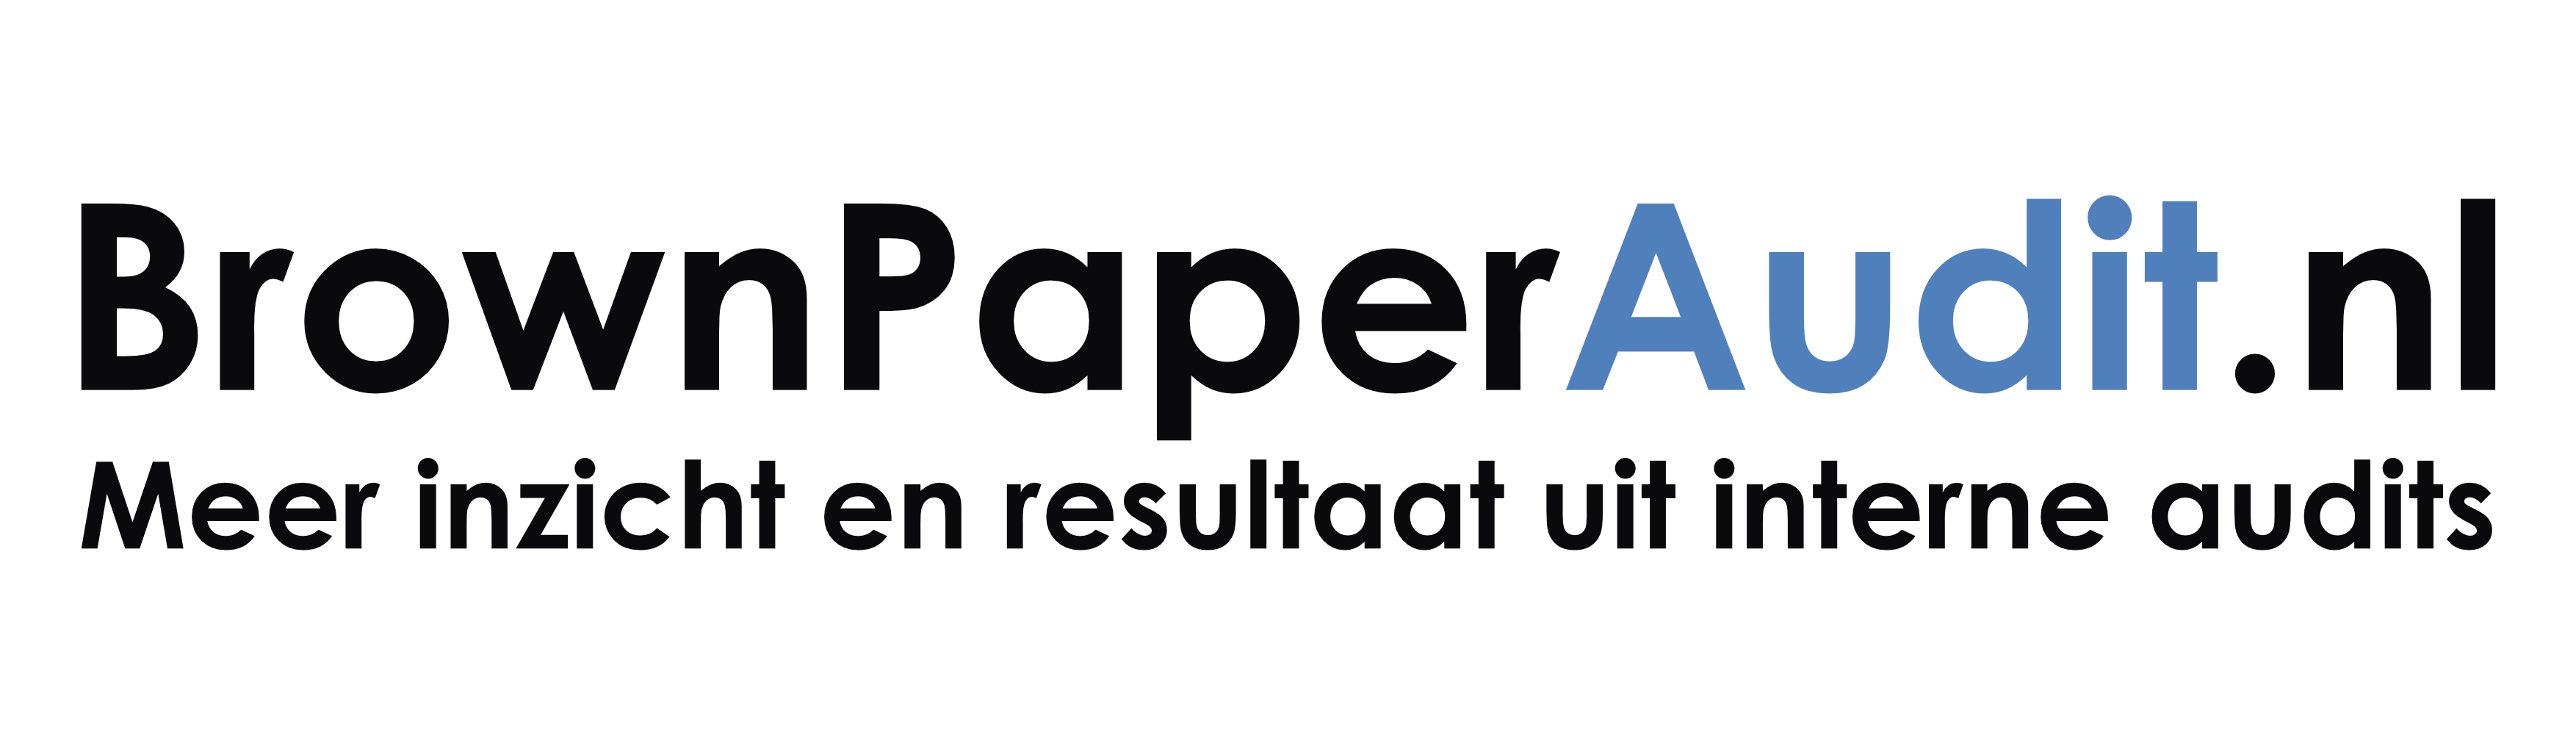 BrownPaperAudit.nl